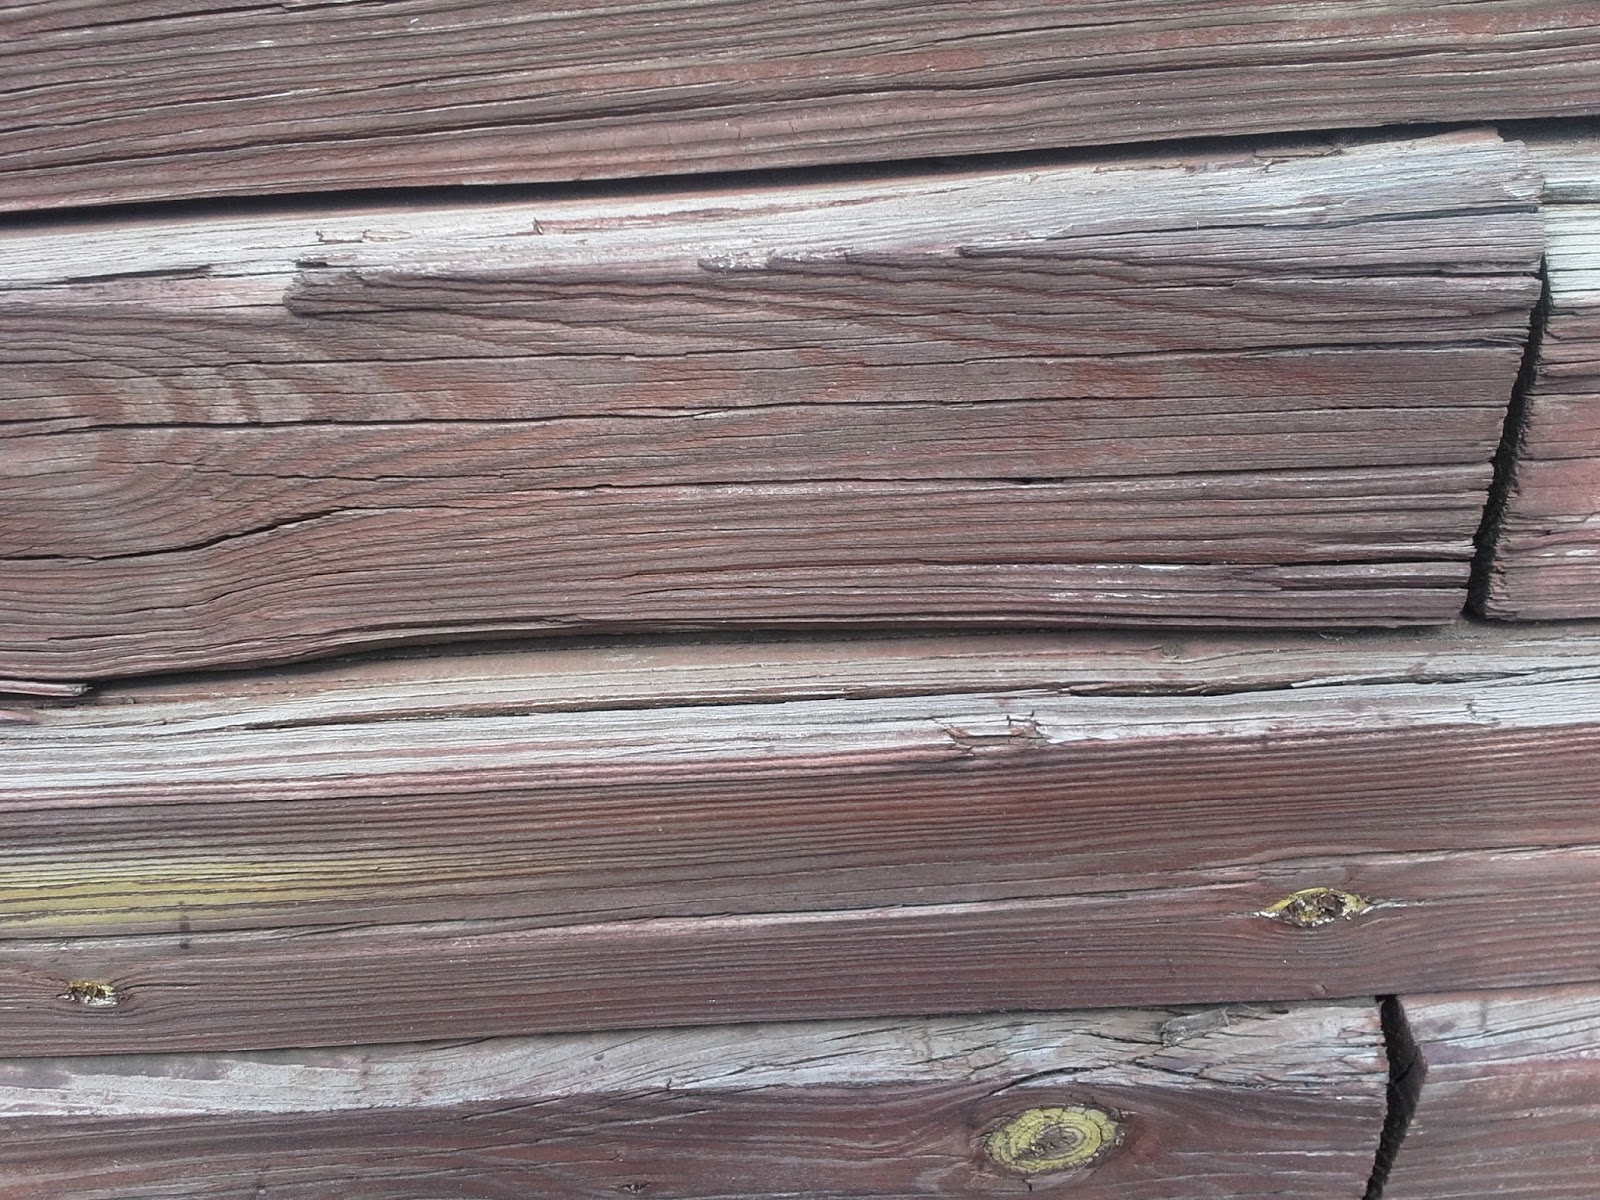 photo wood gem dallas. 1. Find Samples - Photos Are Fine Study The Grain, Cracks, Knots, Color Etc. This Is An Old Retaining Wall. IT Was Weathered And Cracked. A Decent Example Photo Wood Gem Dallas E